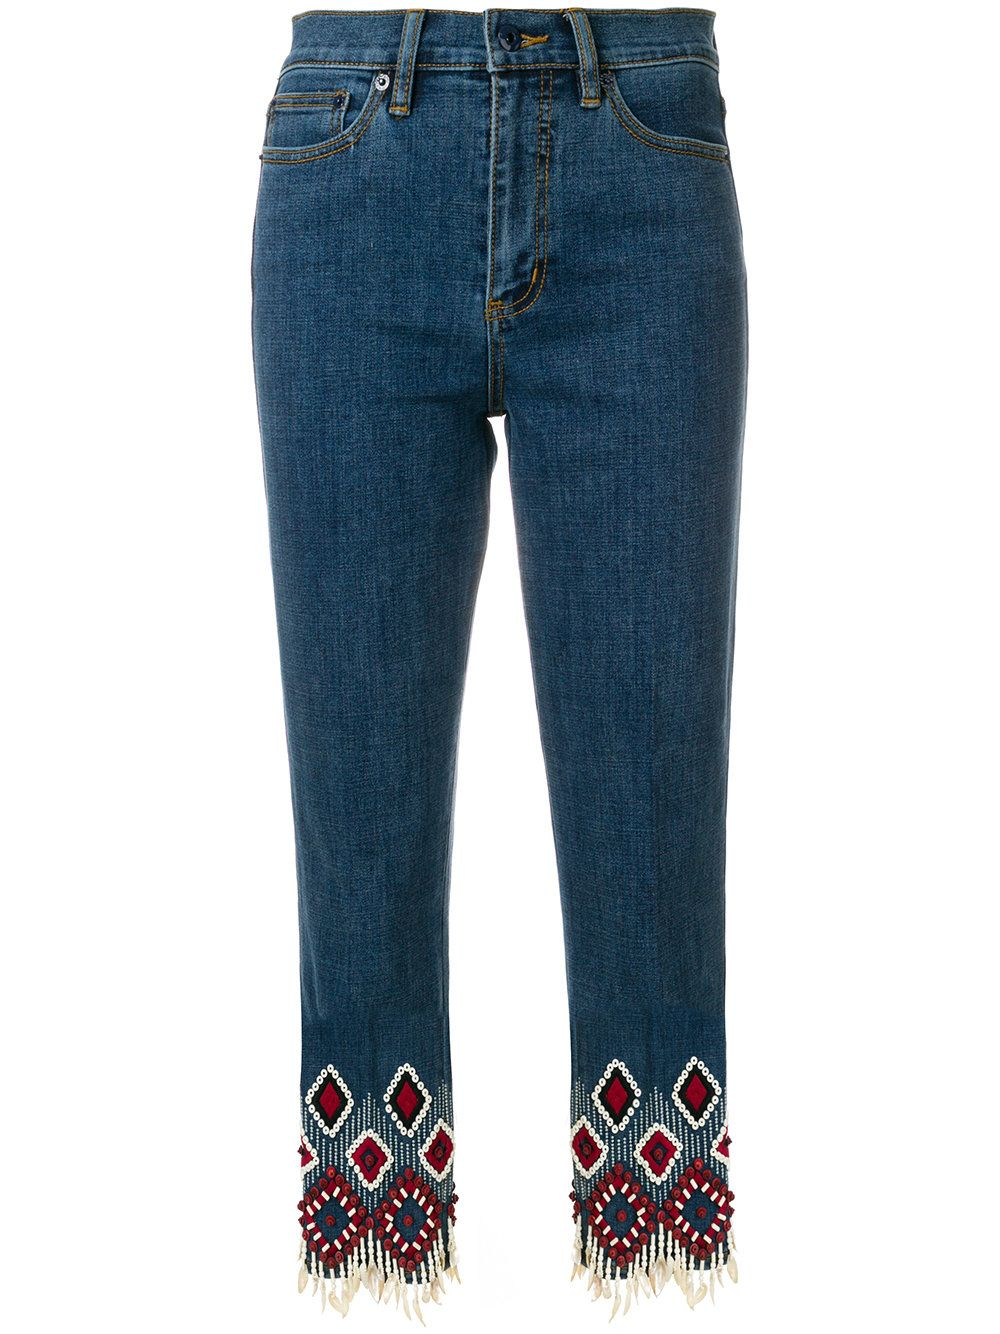 Tory Burch Embroidered Jeans